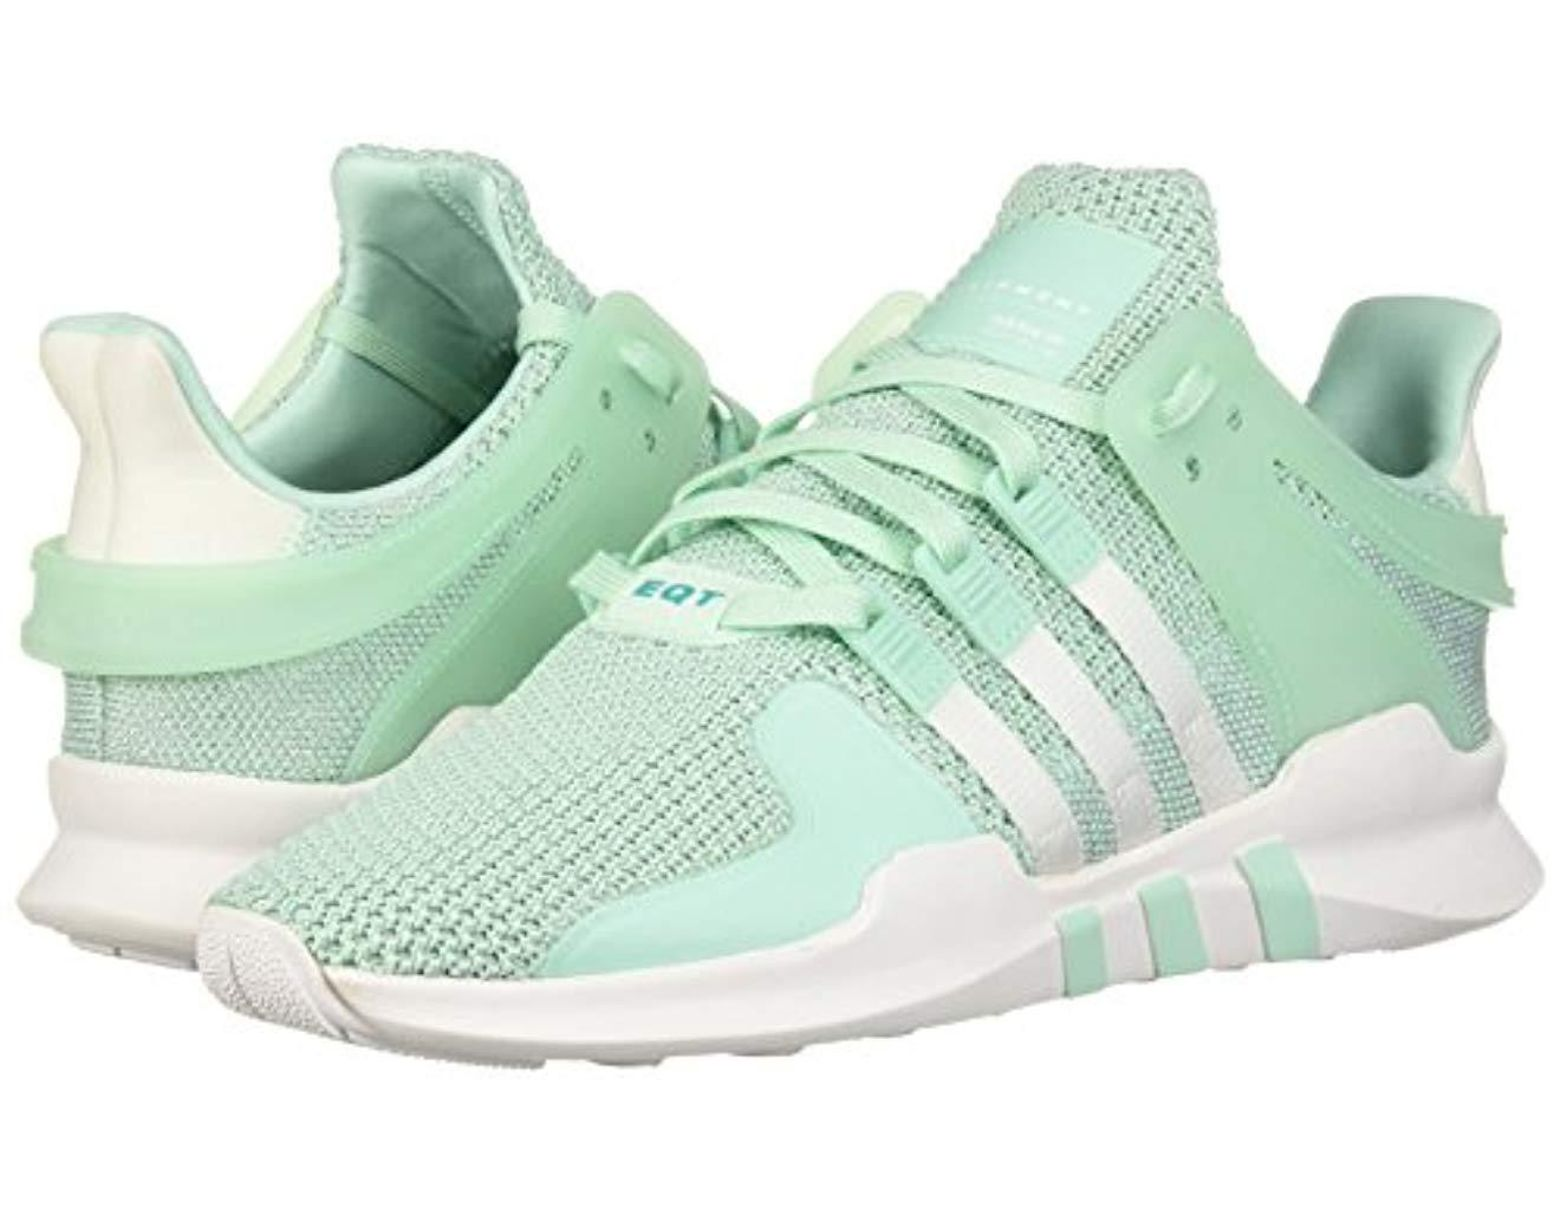 the best attitude c3b58 0666f Women's Eqt Support Adv Running Shoe, Clear Mint/white/hi-res Aqua, 10.5 M  Us